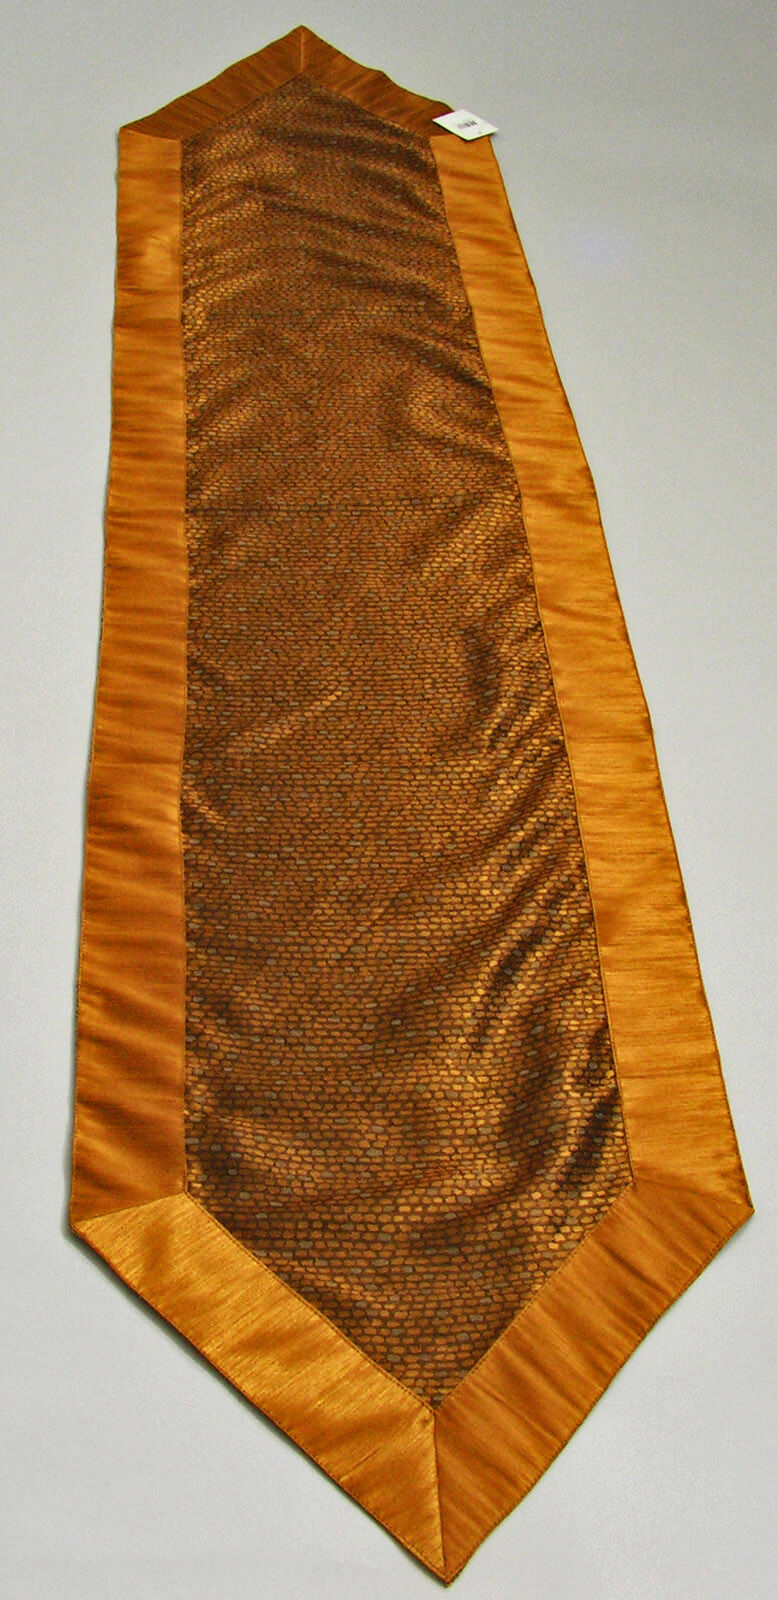 UPC 746427570398 product image for Table Runner Trimmed In Copper Color 16x72 Inches By Melrose Int. | upcitemdb.com